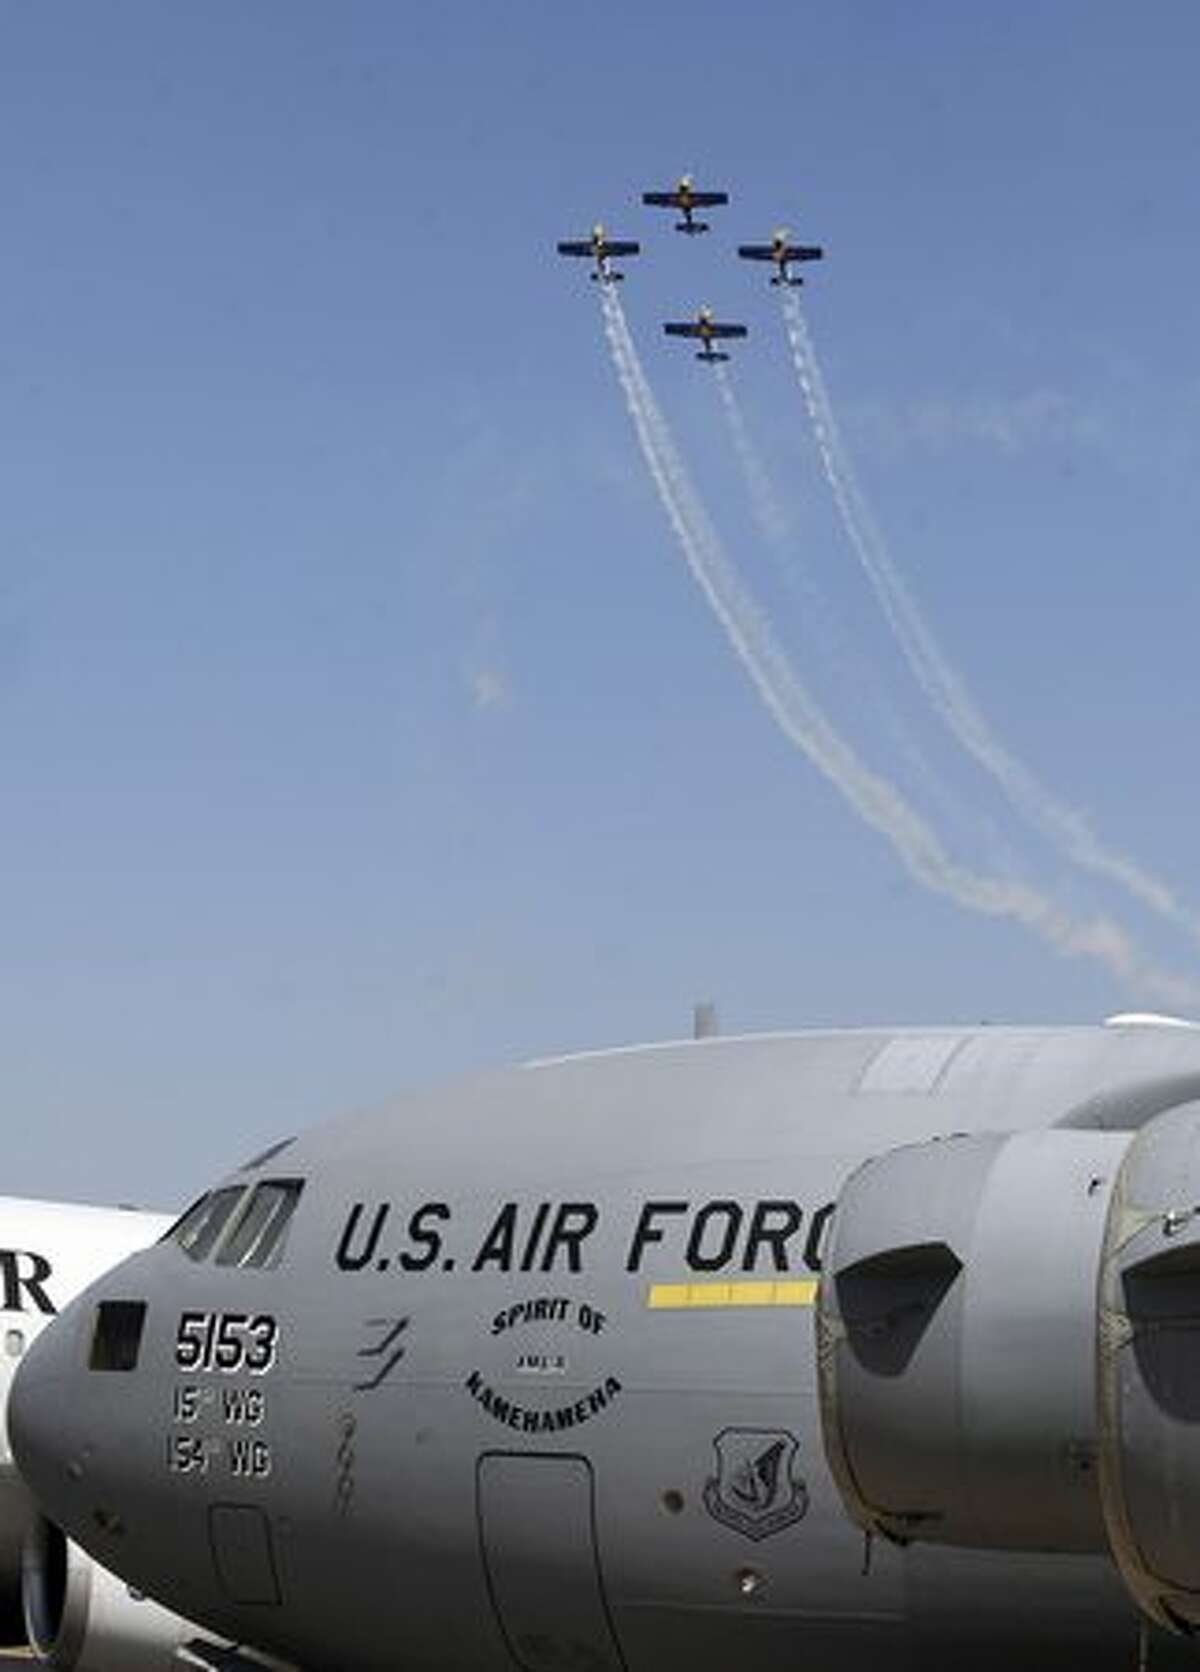 The Red Bull aerobatics team flies in formation past a U.S. cargo aircraft on the eve of the Aero India 2011 exposition at the Yelhanka Air Force station in Bangalore.